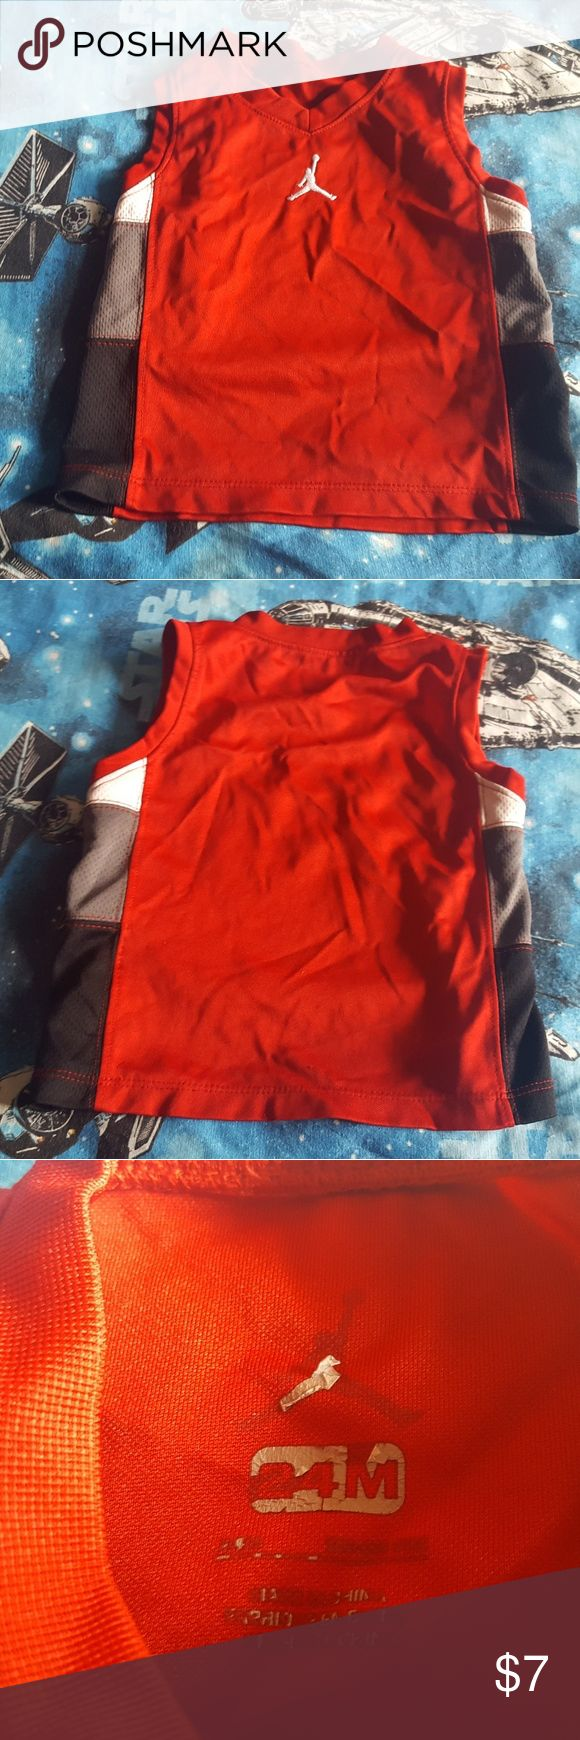 Boys Jordan Basketball Jersey Shirt 24 months Good condition. No stains or tears. Size decal has wear. I specialize in baby/childrens clothing. Bundle items to save on shipping. All bundles get 10% off. New items added all the time! Jordan Shirts & Tops Tank Tops #babytanktopsboy